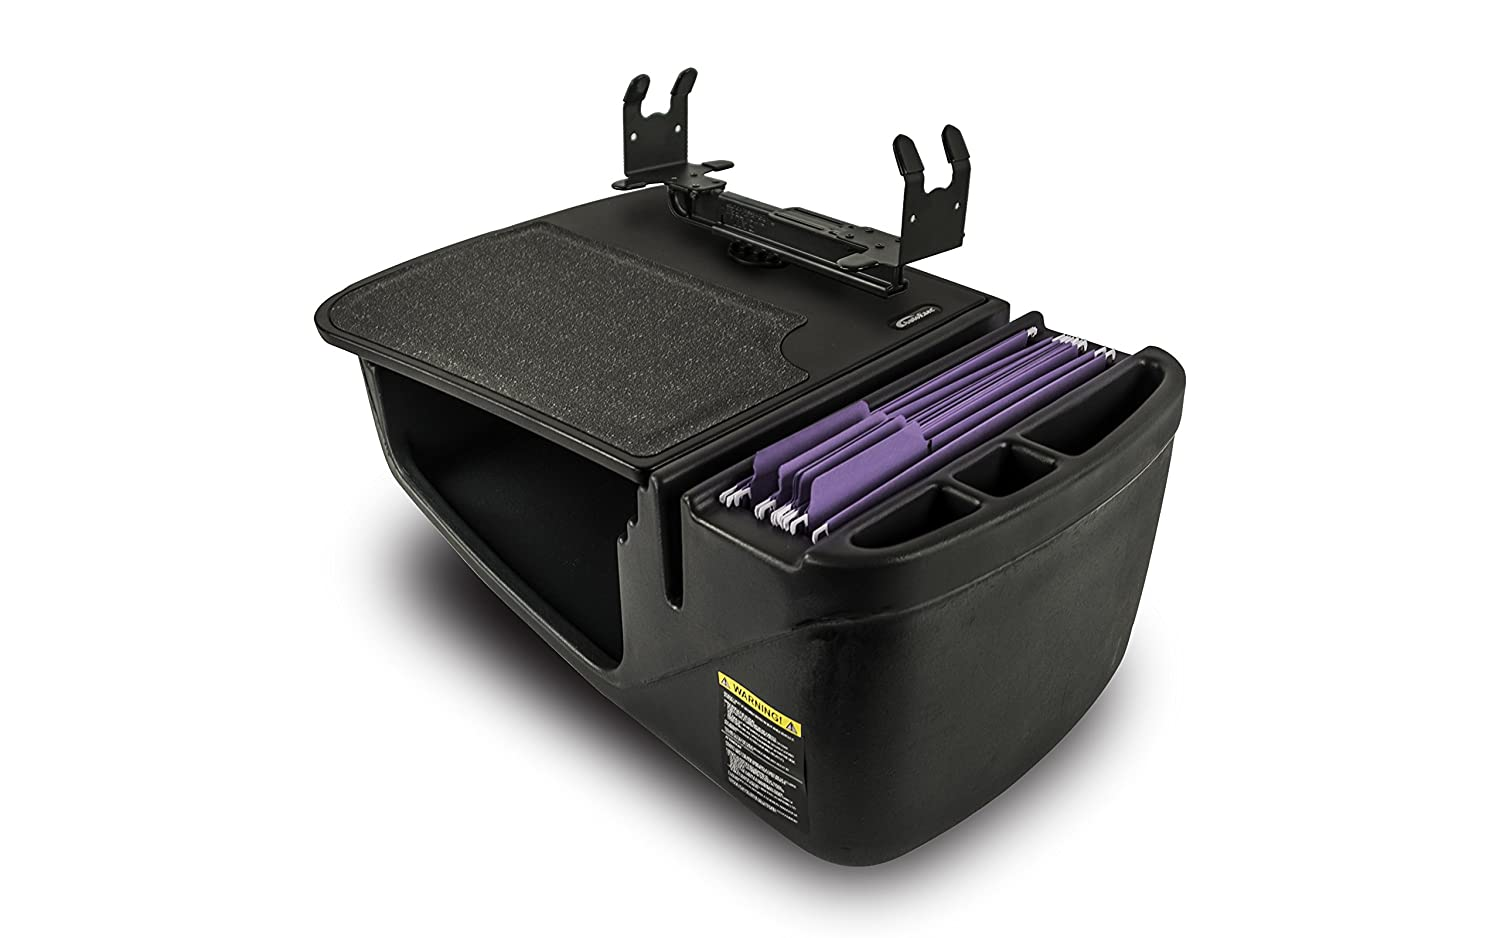 with Built-in Power Inverter, Printer Stand and iPad//Tablet Mount AutoExec AUE08175 Efficiency GripMaster Car Desk